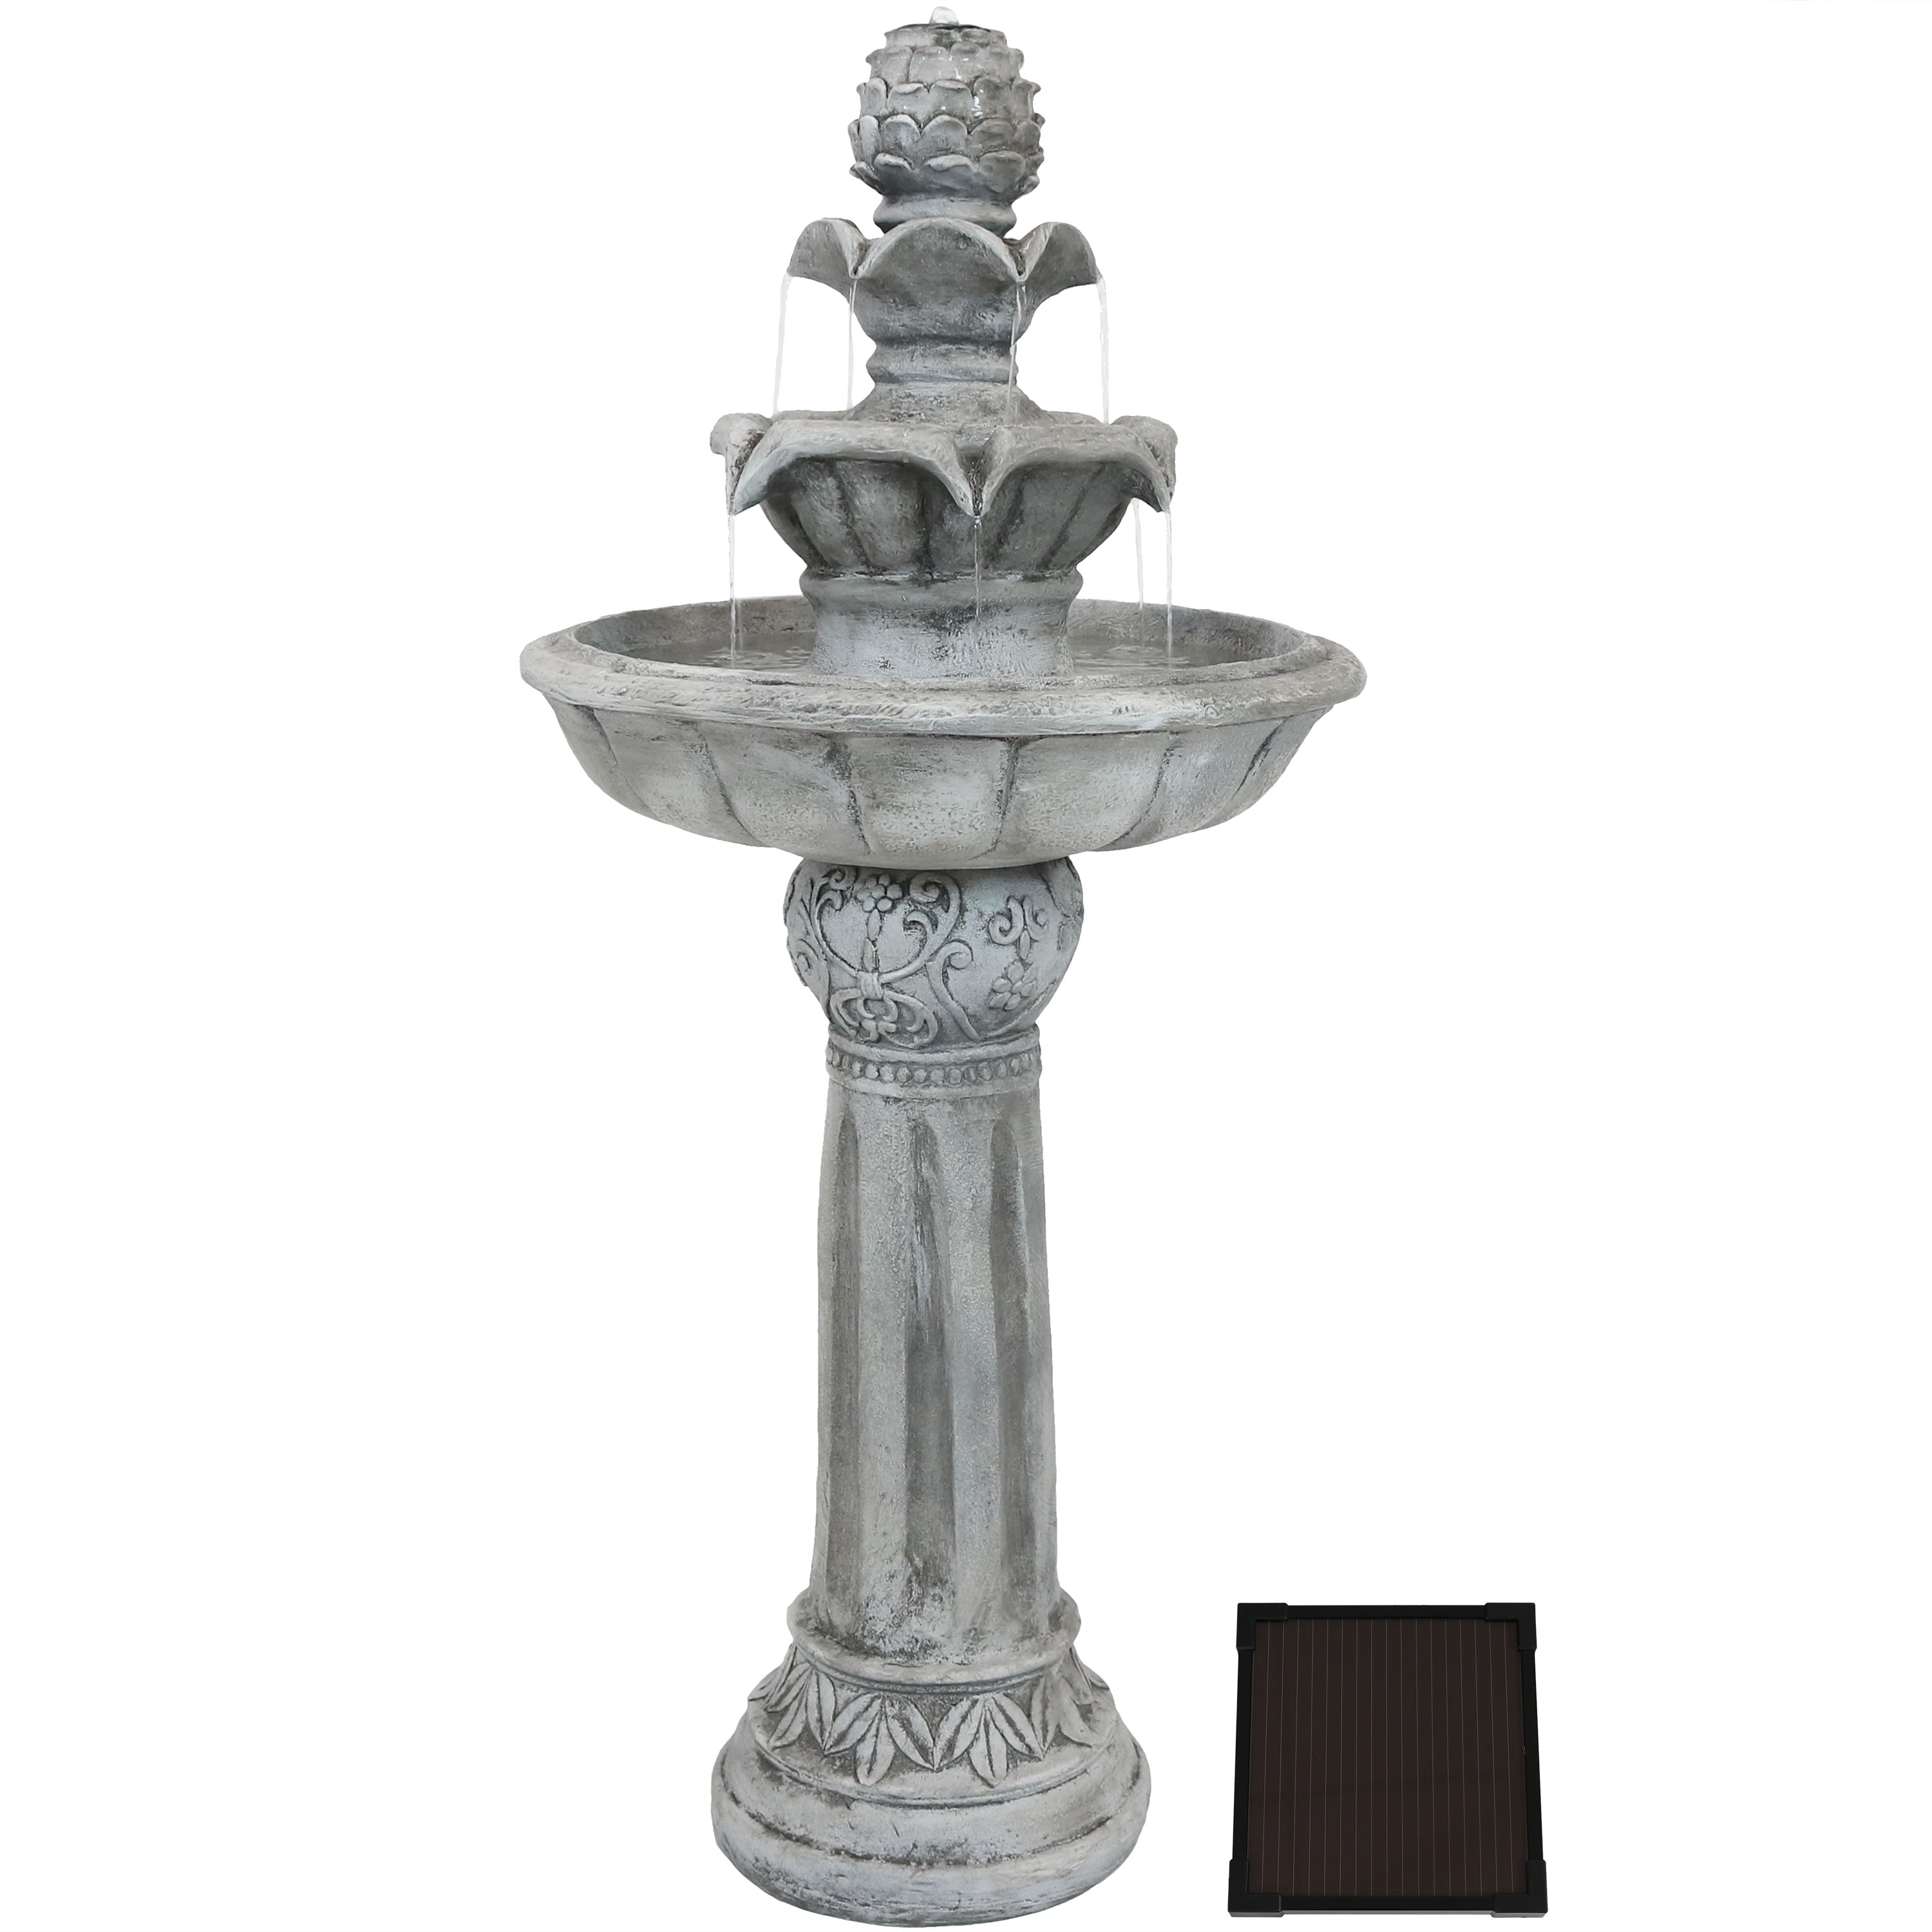 Sunnydaze Ornate Elegance Tiered Outdoor Solar-on-Demand Water Fountain with LED Light and Submersible Electric Pump, White Finish, 42-Inch